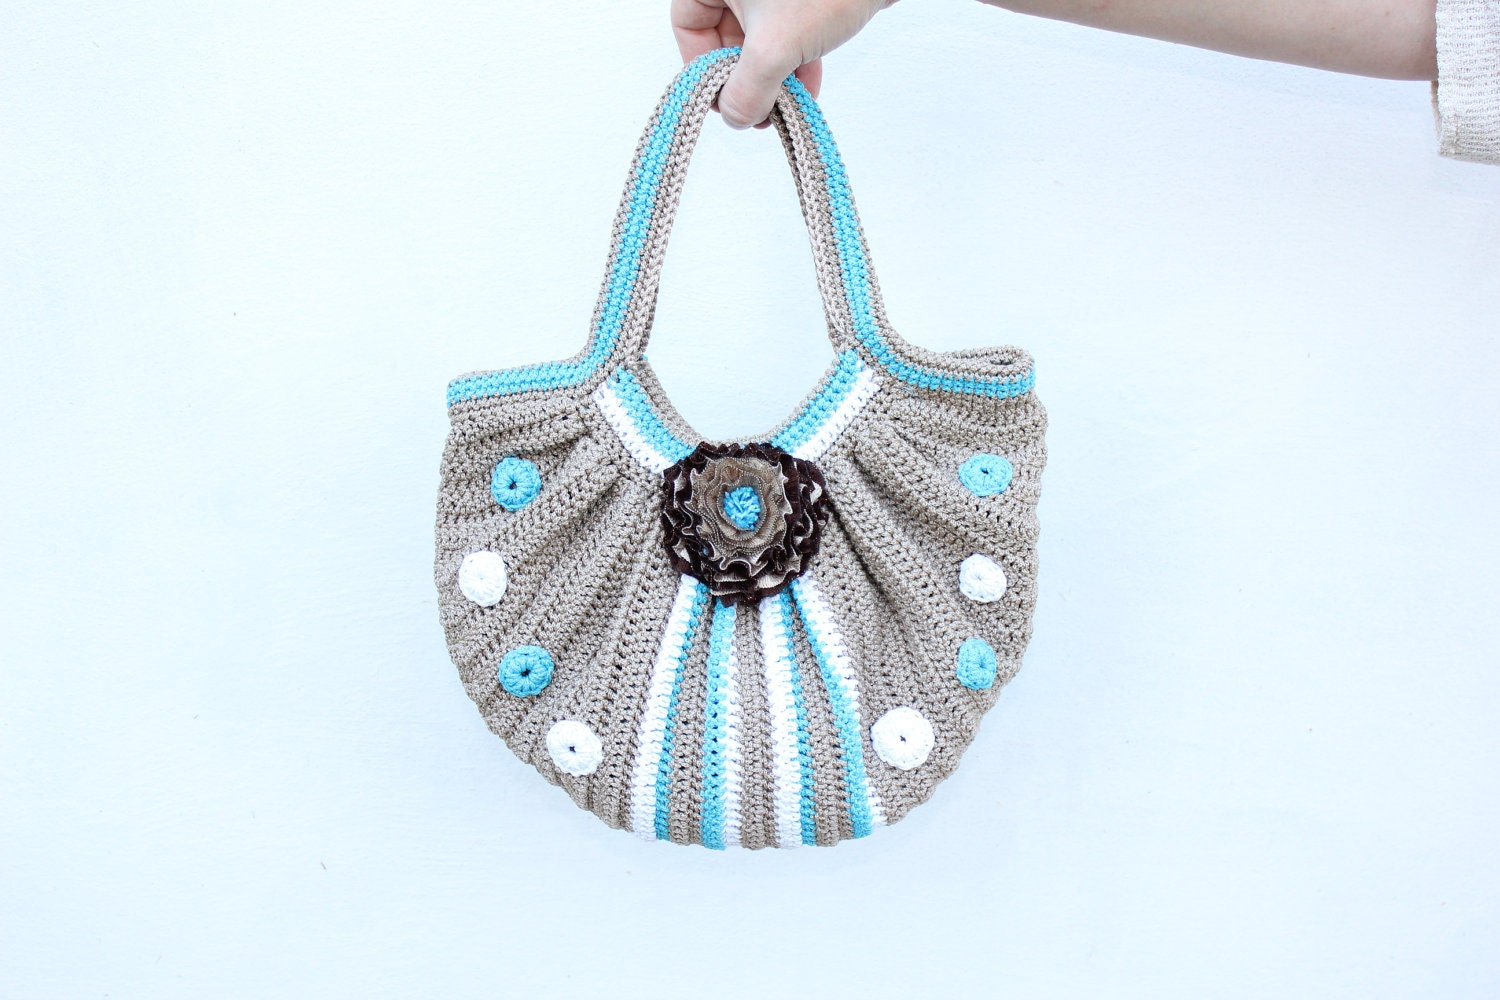 Crochet bag with two handles/ Crochet bag with flower by TaniaSh